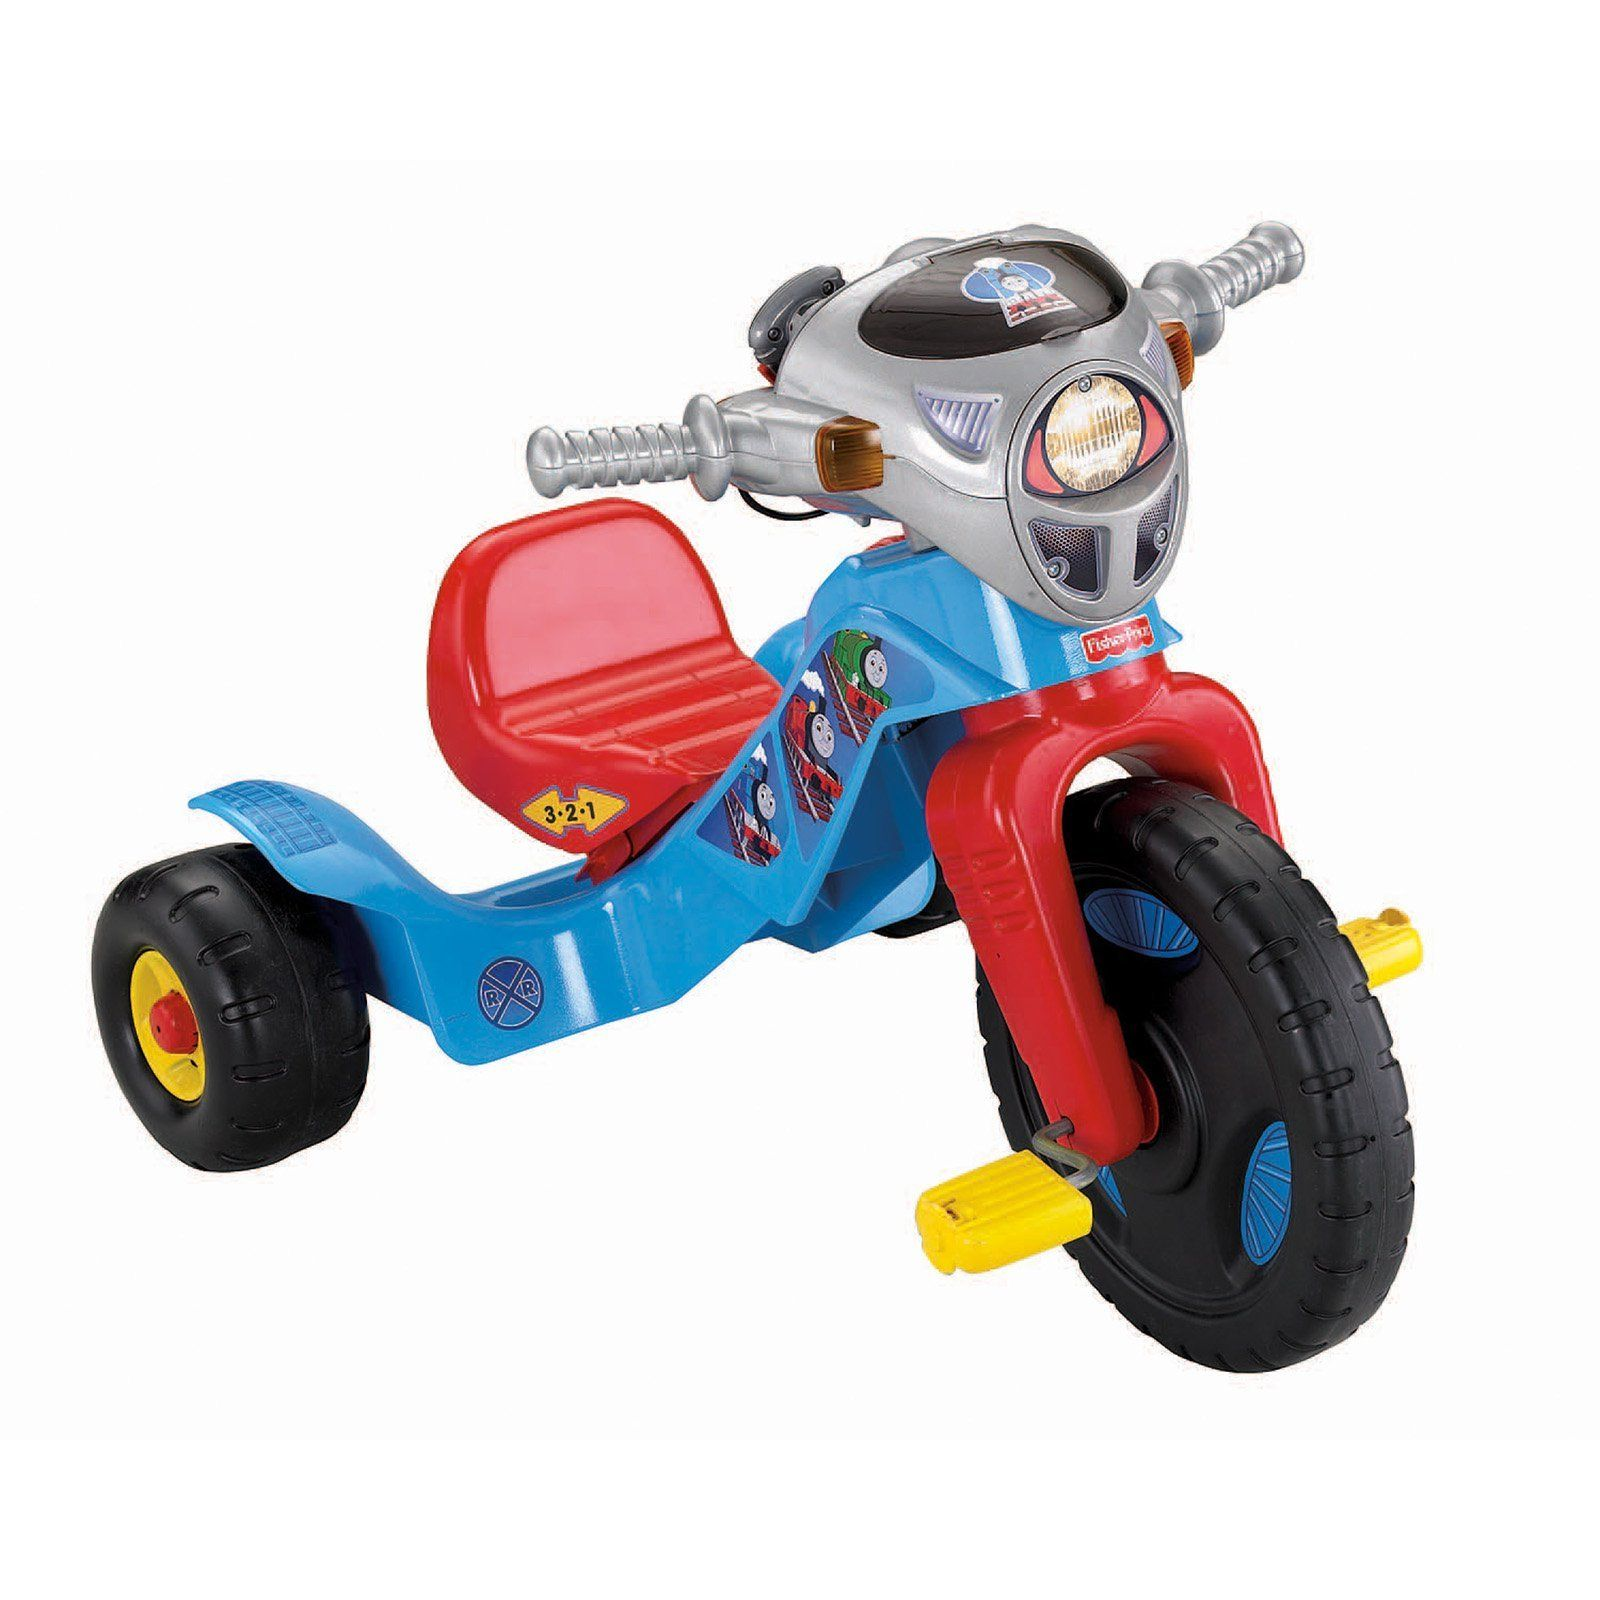 Boys Tricycle Toys Dirt Bikes Tricycles Boy Kids Toy Bike Toys